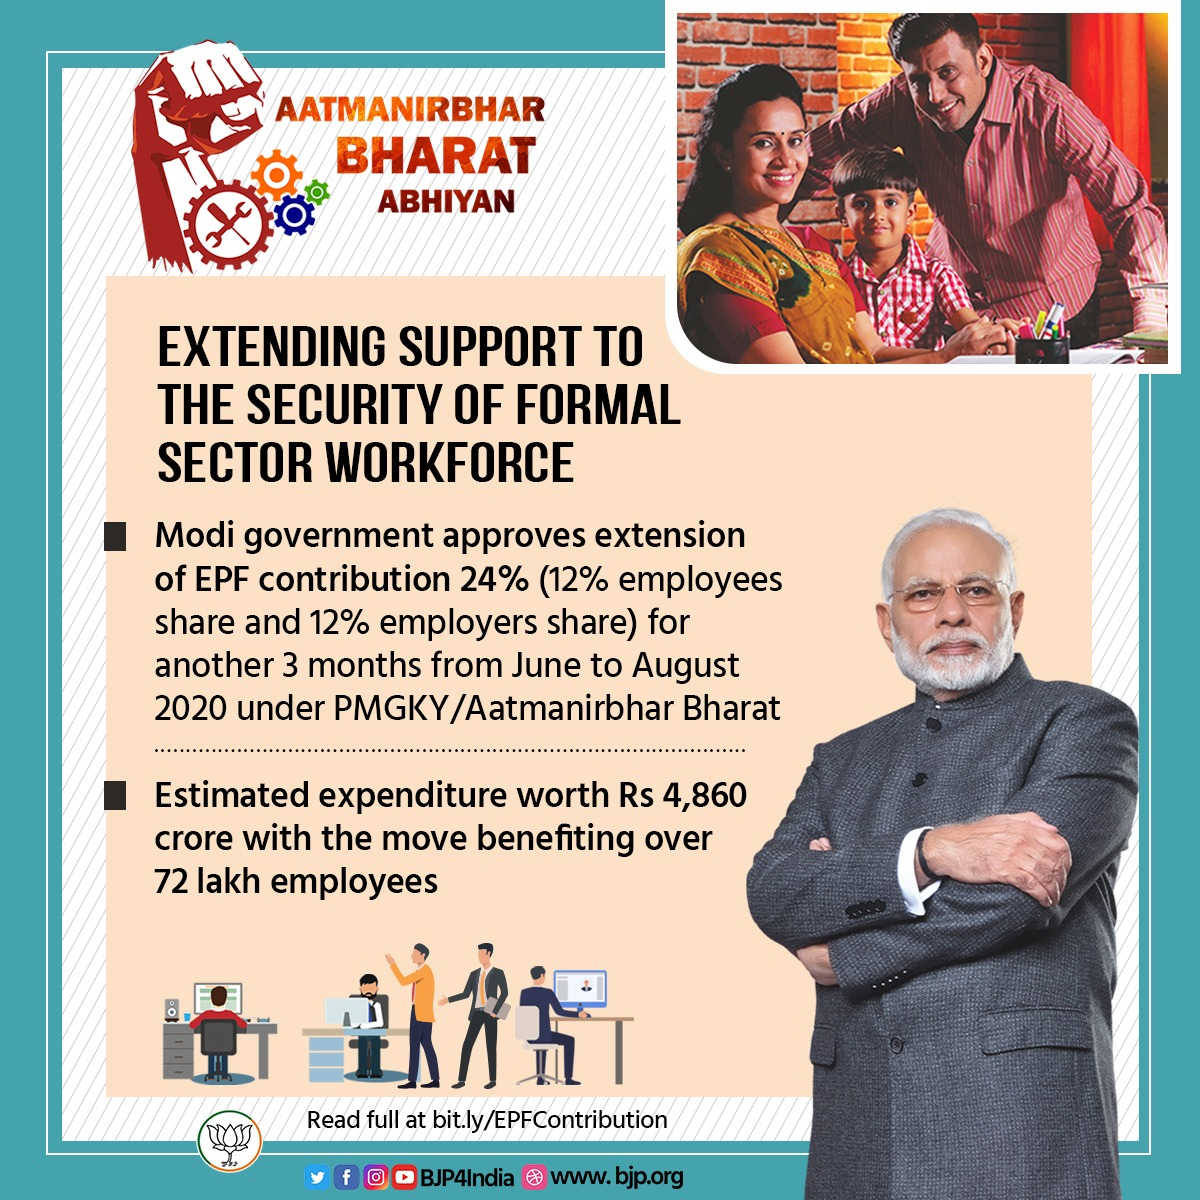 Extending support to the security of formal sector workforce. Modi government approves extension of 24% EPF contribution (12% employees share and 12% employers share) for another 3 months form June to August 2020. #AatmanirbharBharat